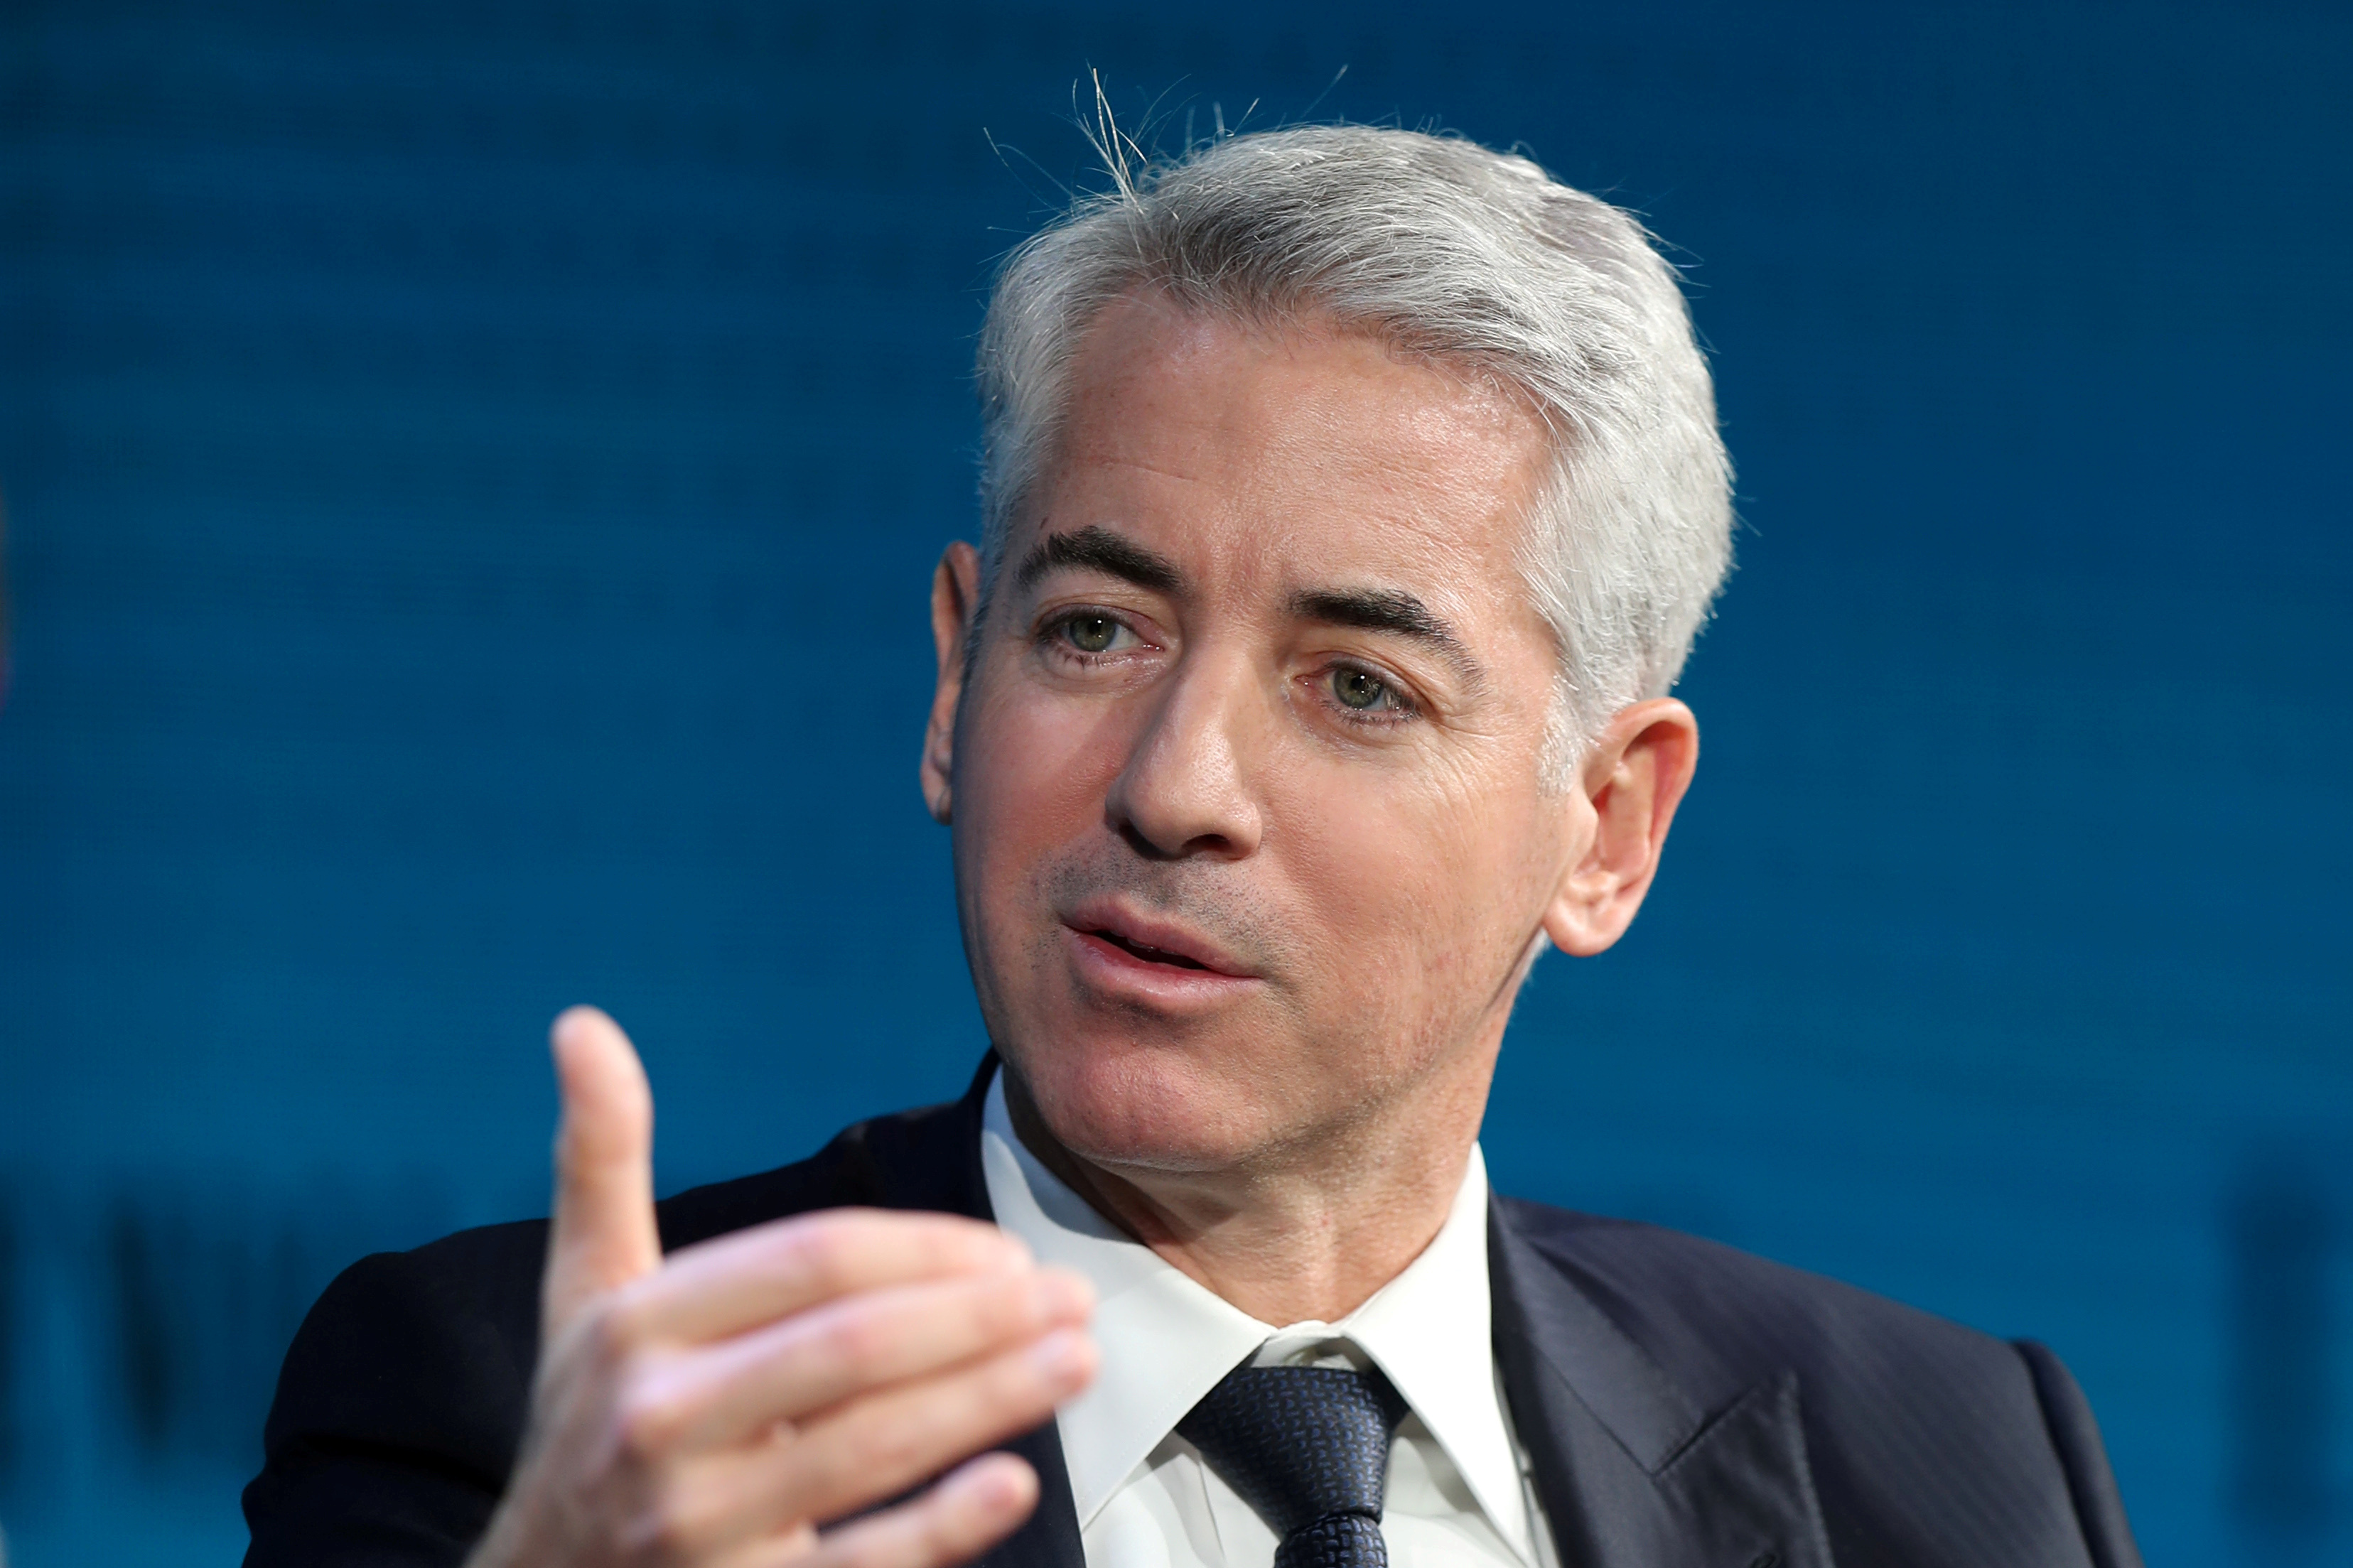 Bill Ackman, CEO of Pershing Square Capital, speaks at the Wall Street Journal Digital Conference in Laguna Beach, California, U.S., October 17, 2017. REUTERS/Mike Blake